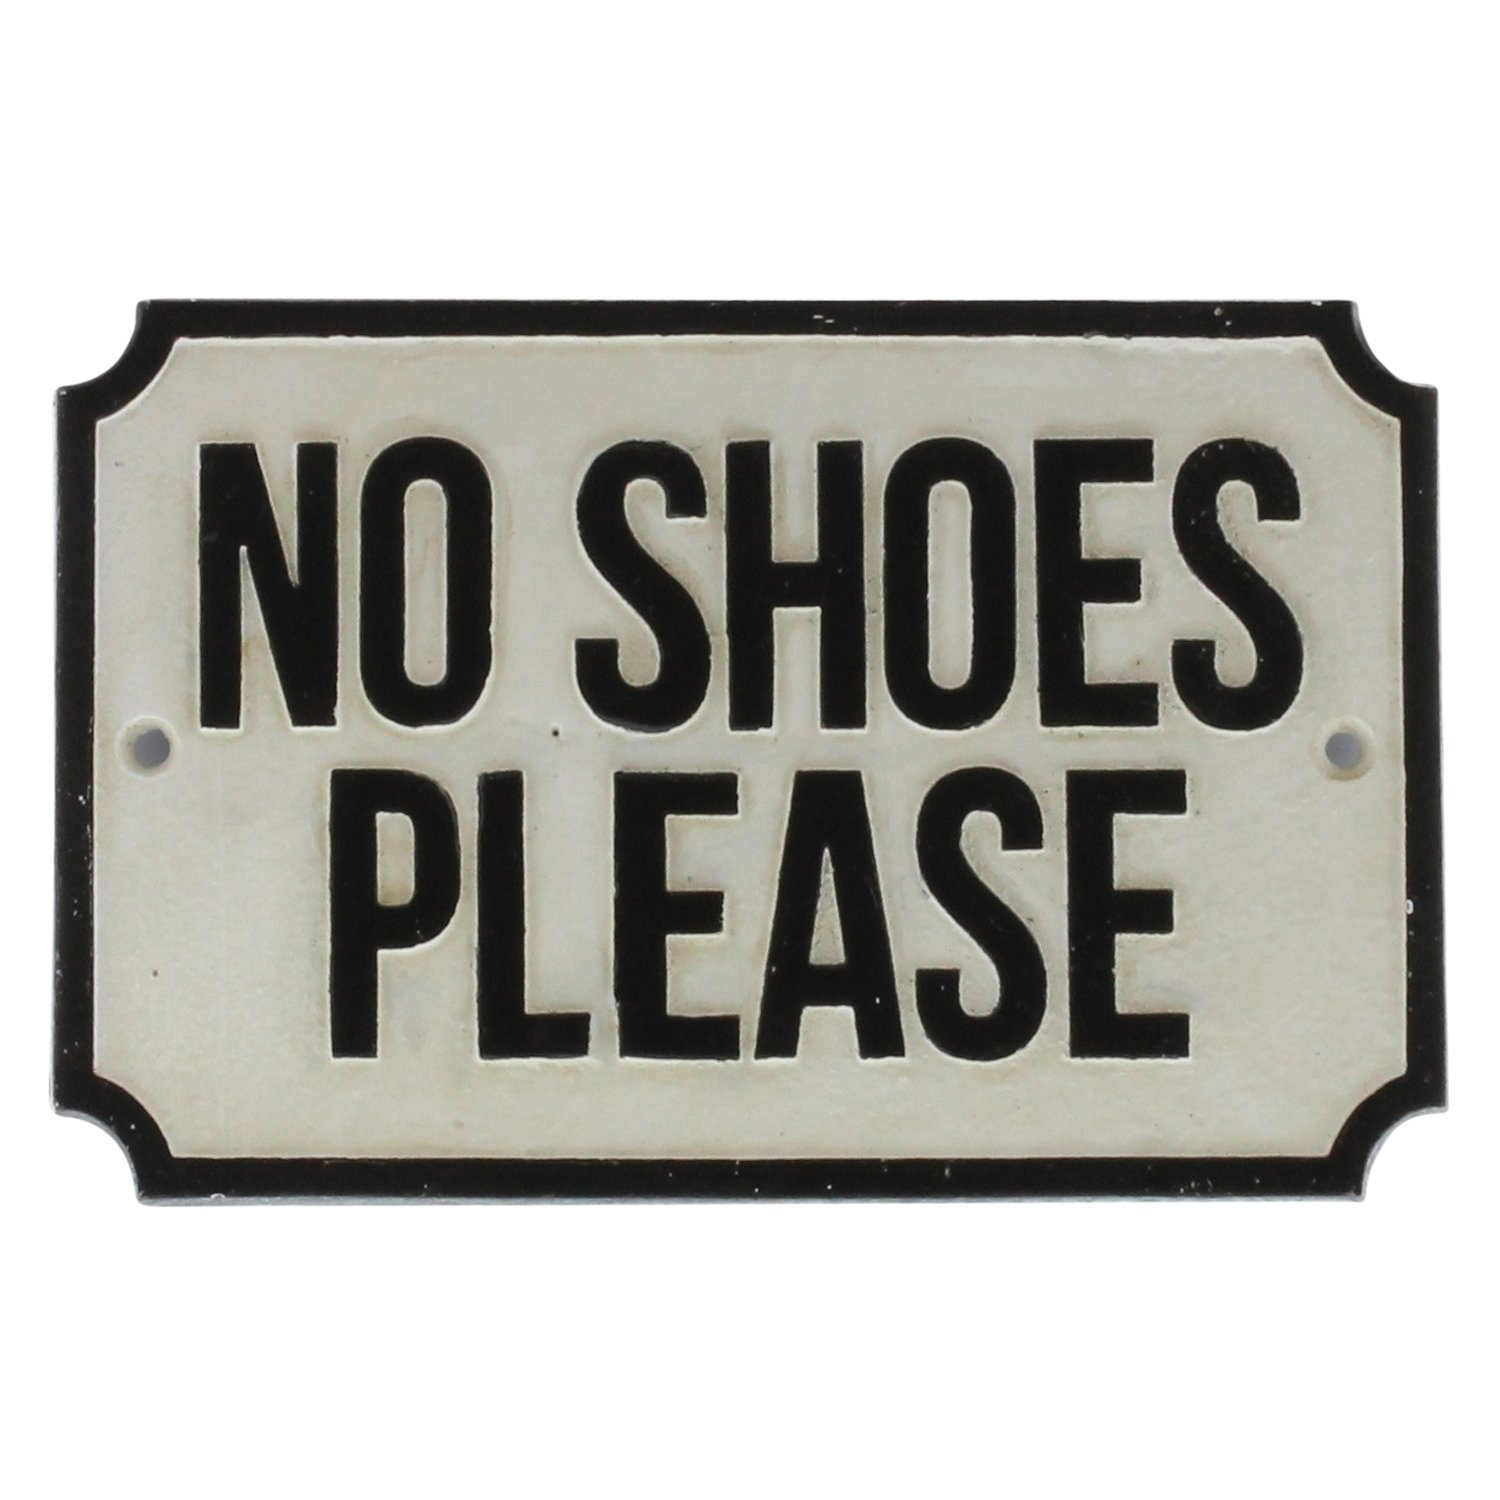 photograph relating to Please Remove Your Shoes Sign Printable Free titled Footwear off Dwelling: How towards implement a no shoe plan with people